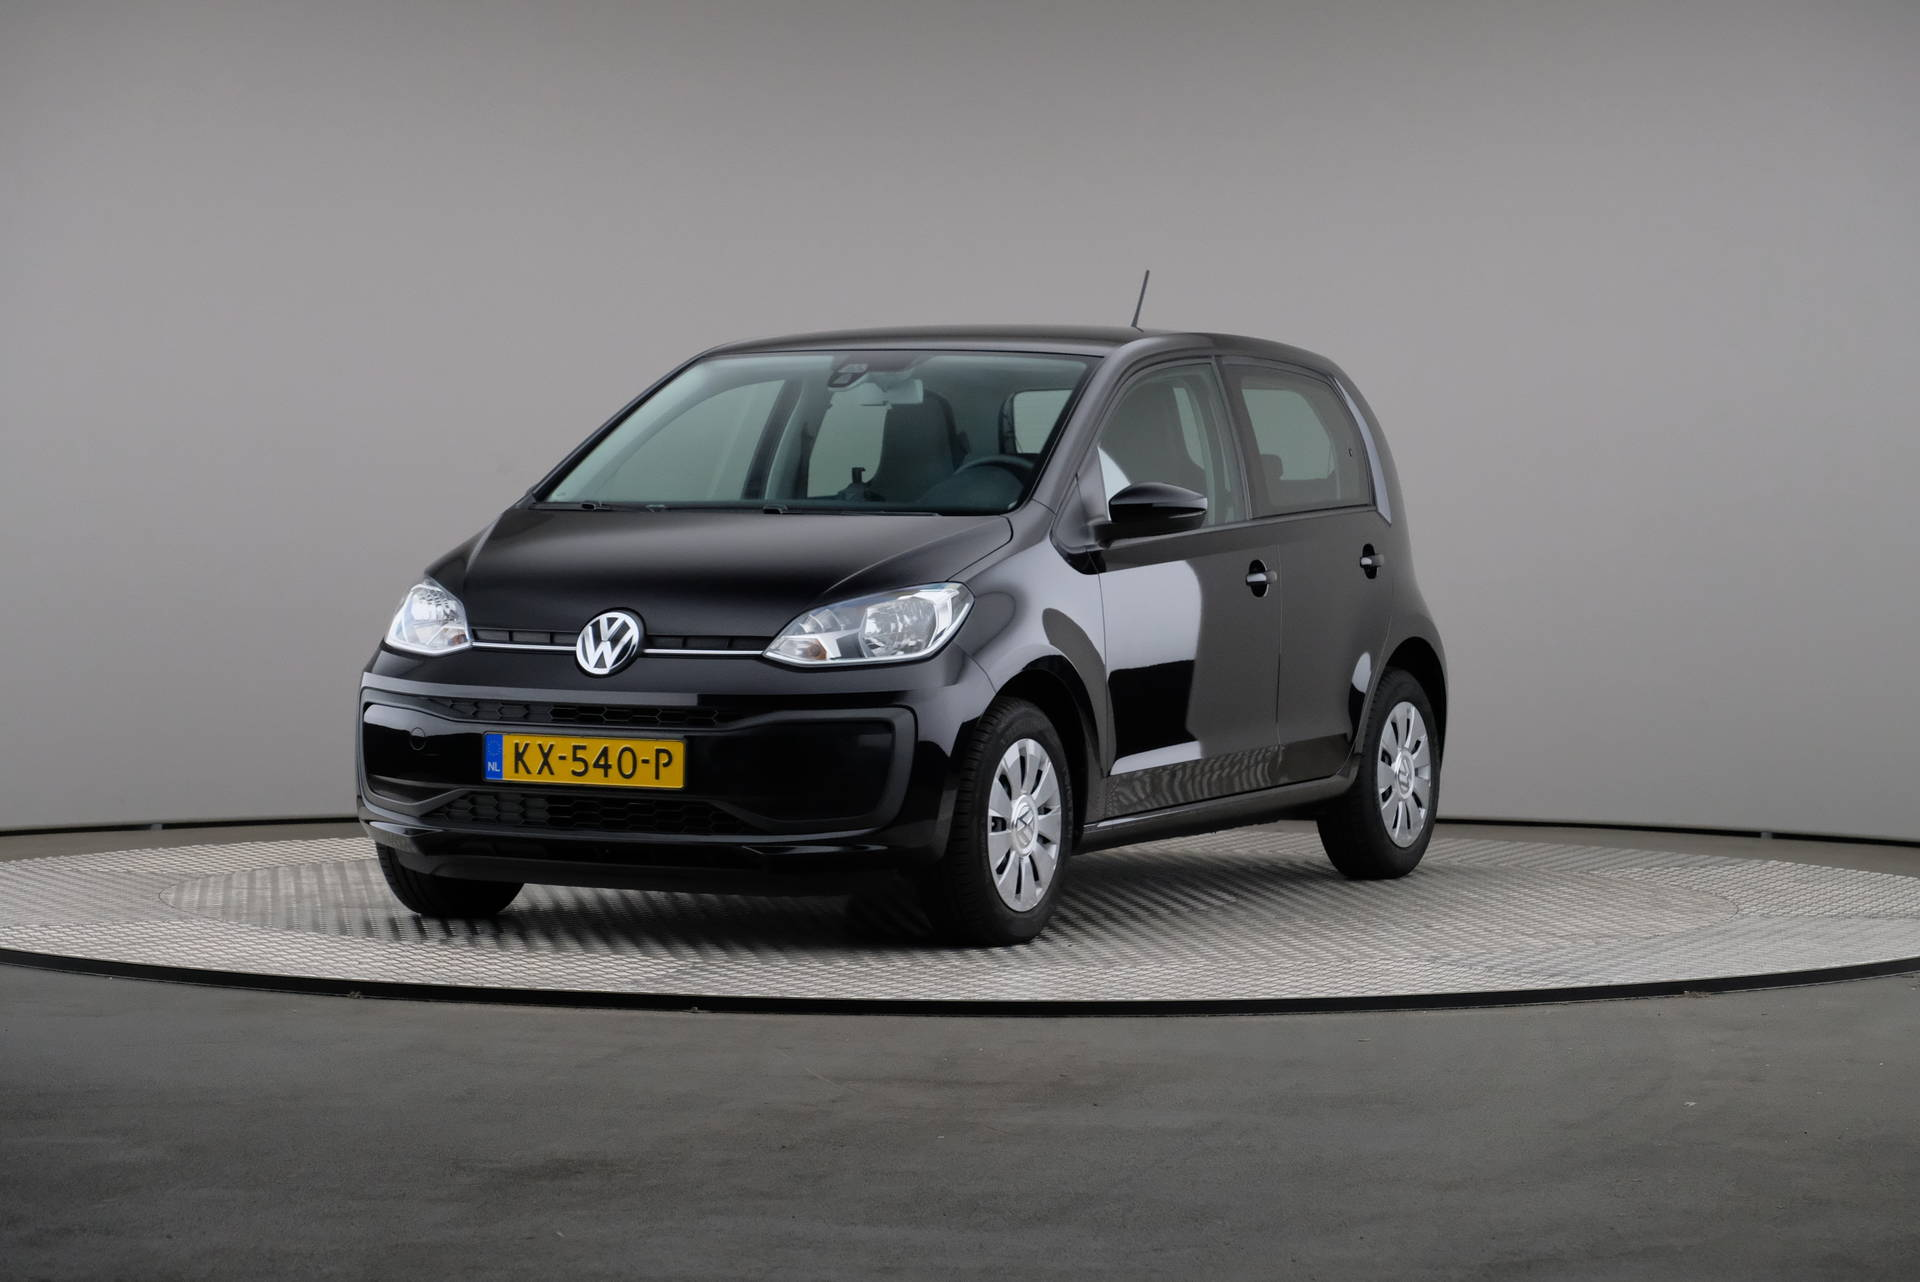 Volkswagen up! 1.0 44kW Move up! BlueMotion Technology, Airconditioning, 360-image35